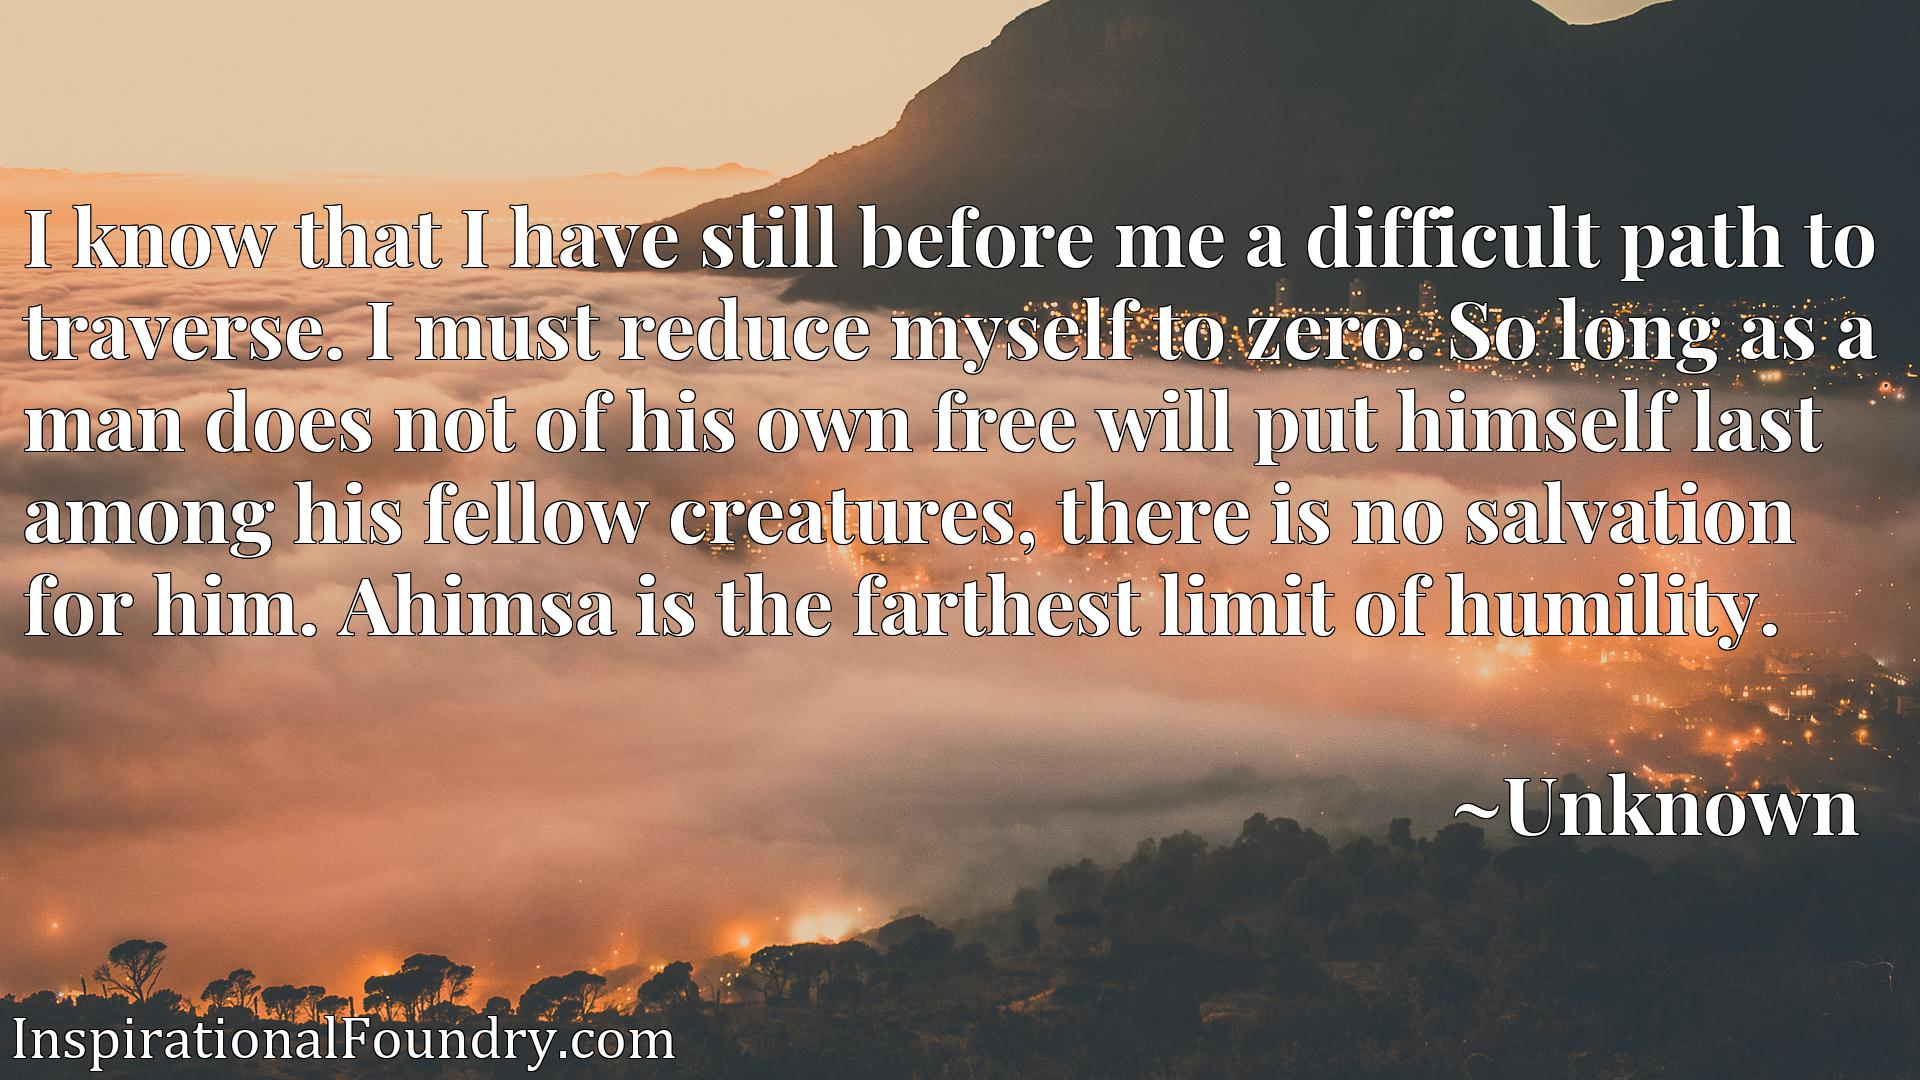 I know that I have still before me a difficult path to traverse. I must reduce myself to zero. So long as a man does not of his own free will put himself last among his fellow creatures, there is no salvation for him. Ahimsa is the farthest limit of humility.